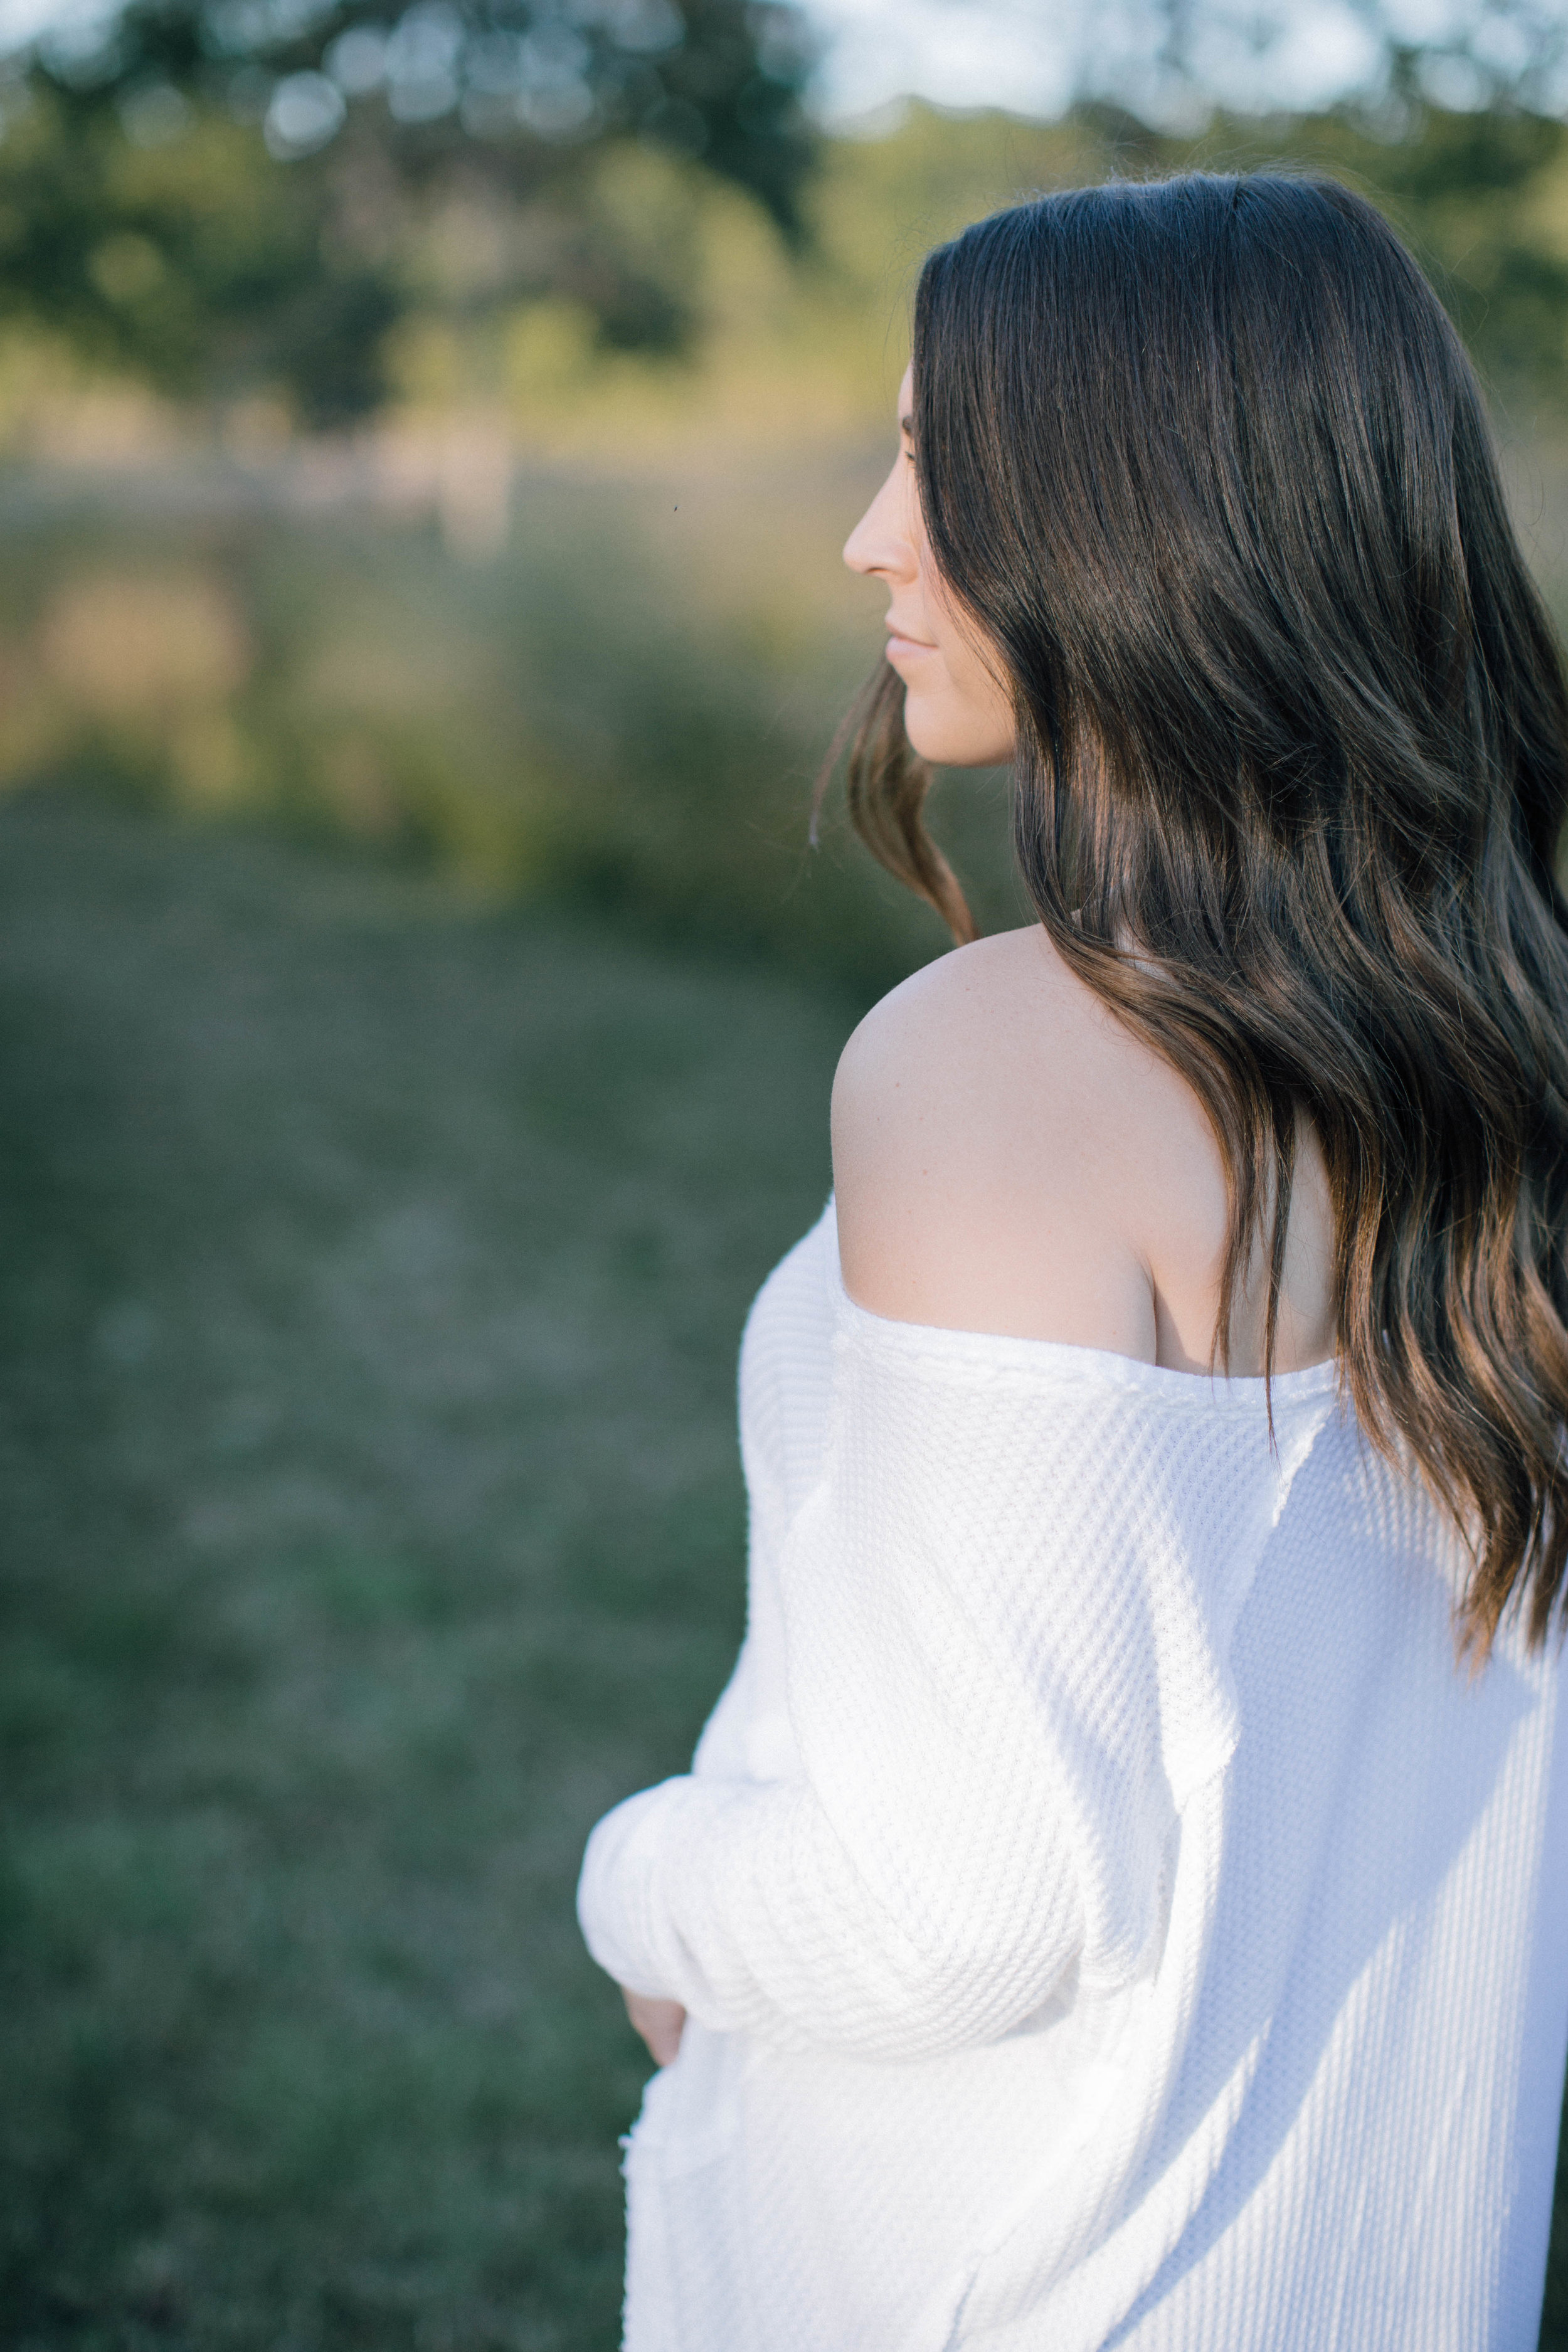 fall fashion / fall outfit idea / fall outfit inspiration / free people white thermal / off the shoulder top